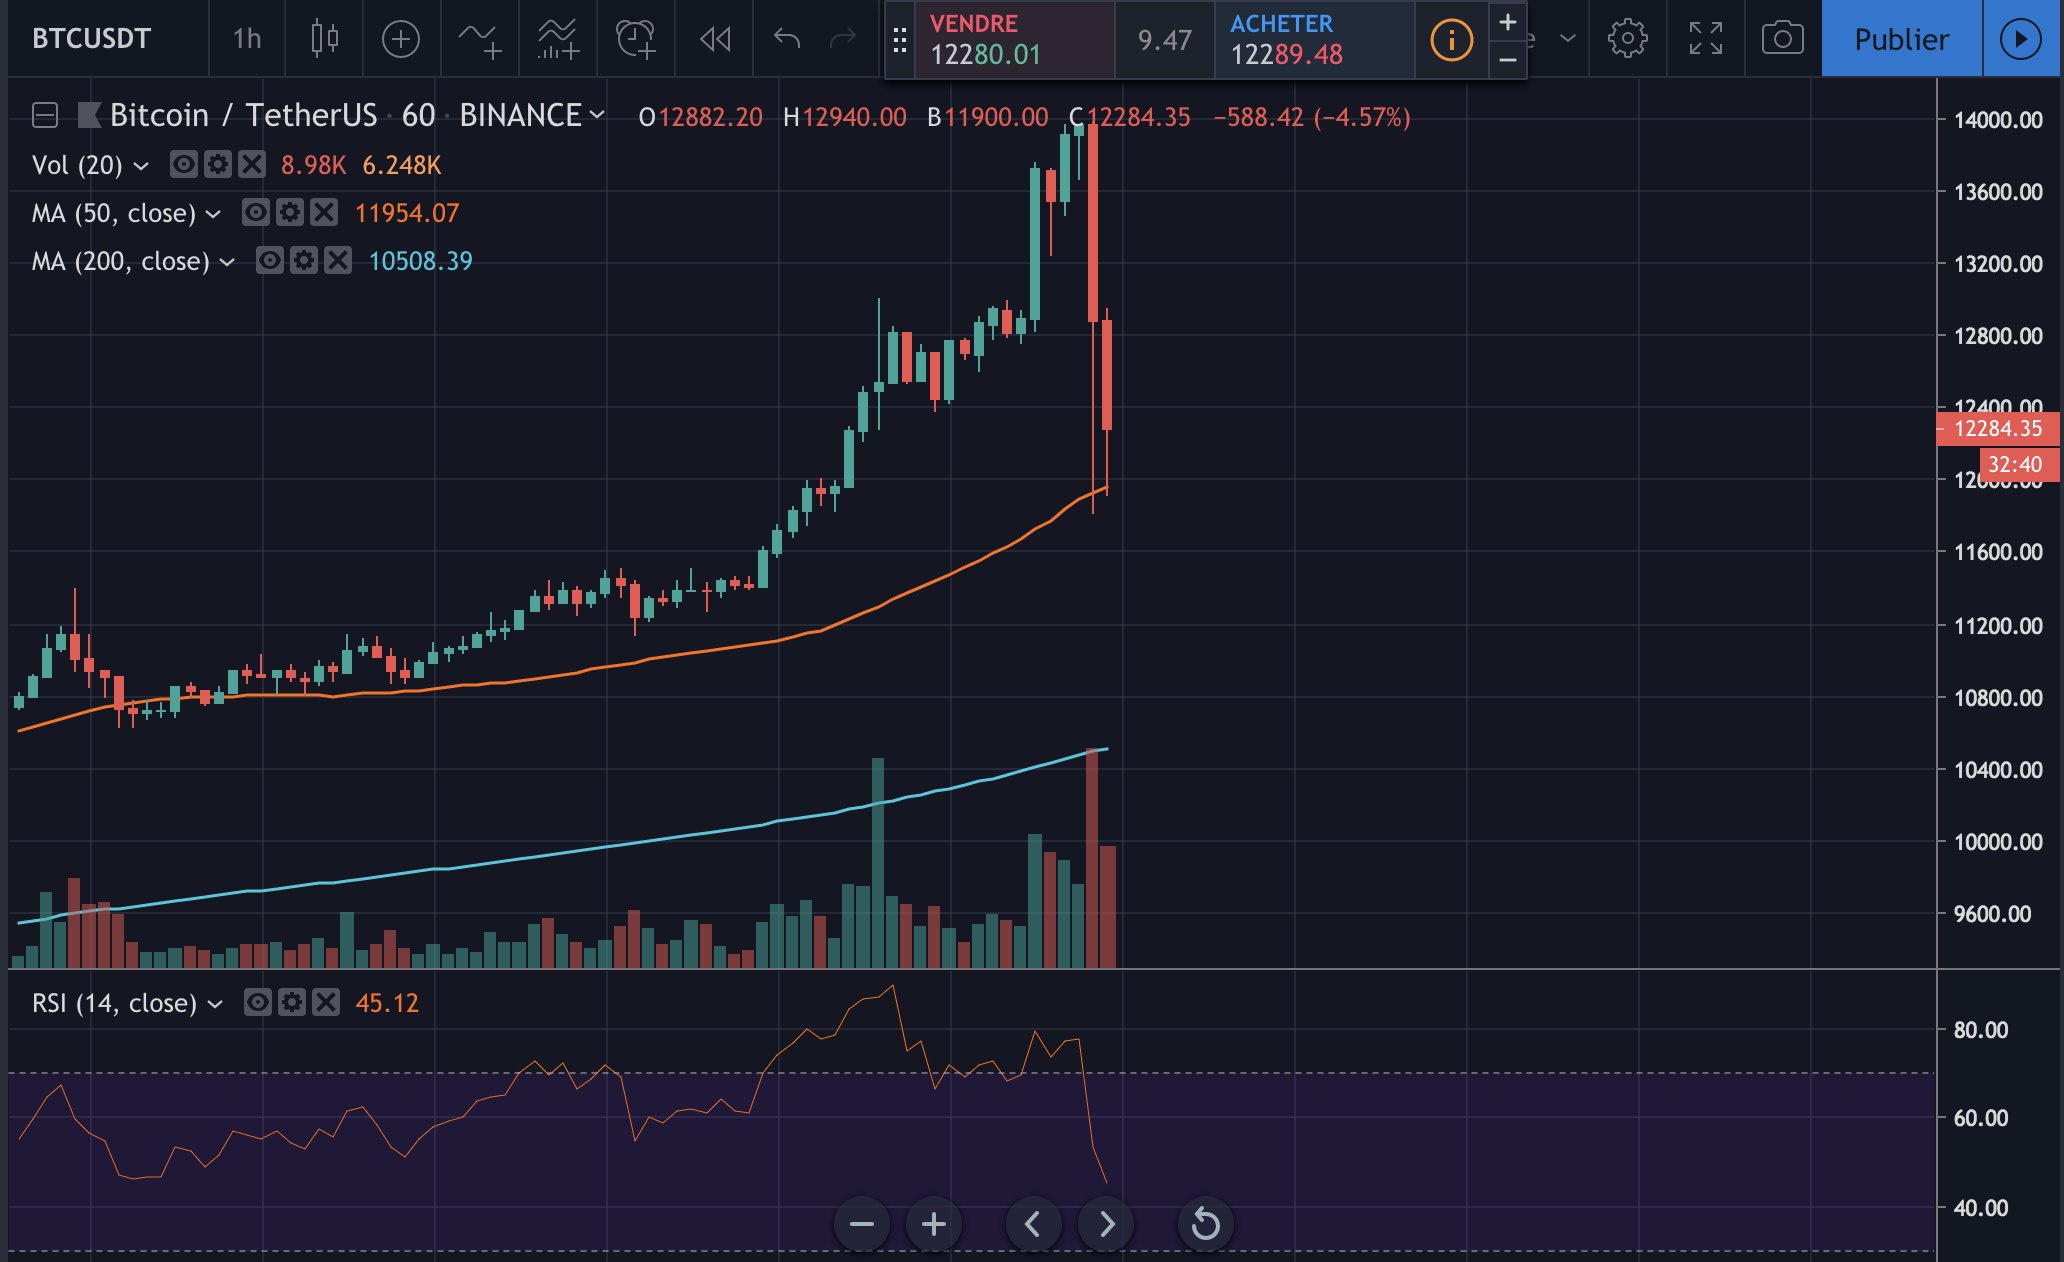 Le graphique BTC/USDT en 1H sur Binance. Source : TradingView